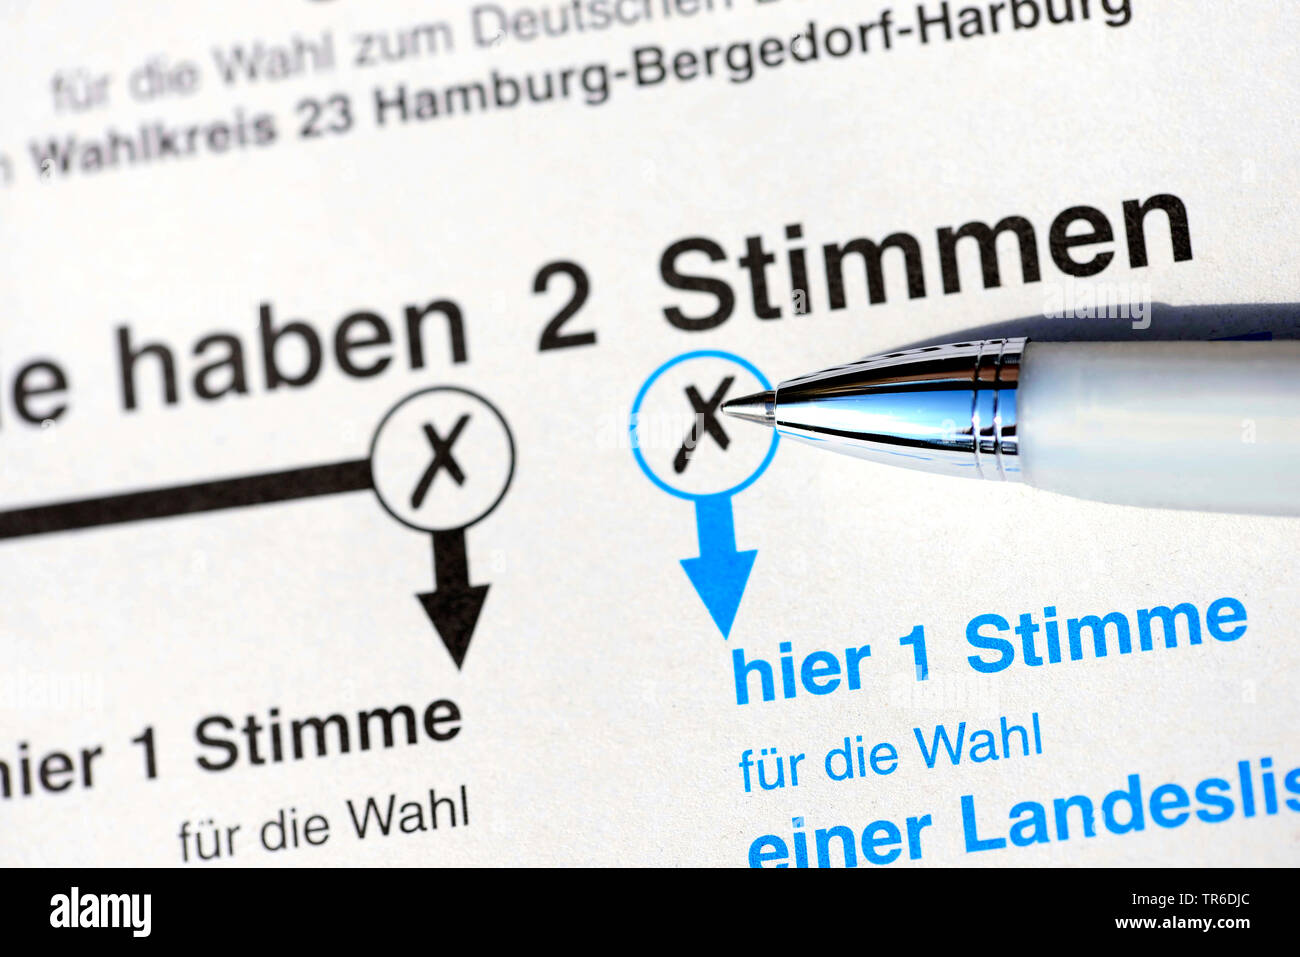 ballot paper for German elections, Germany - Stock Image